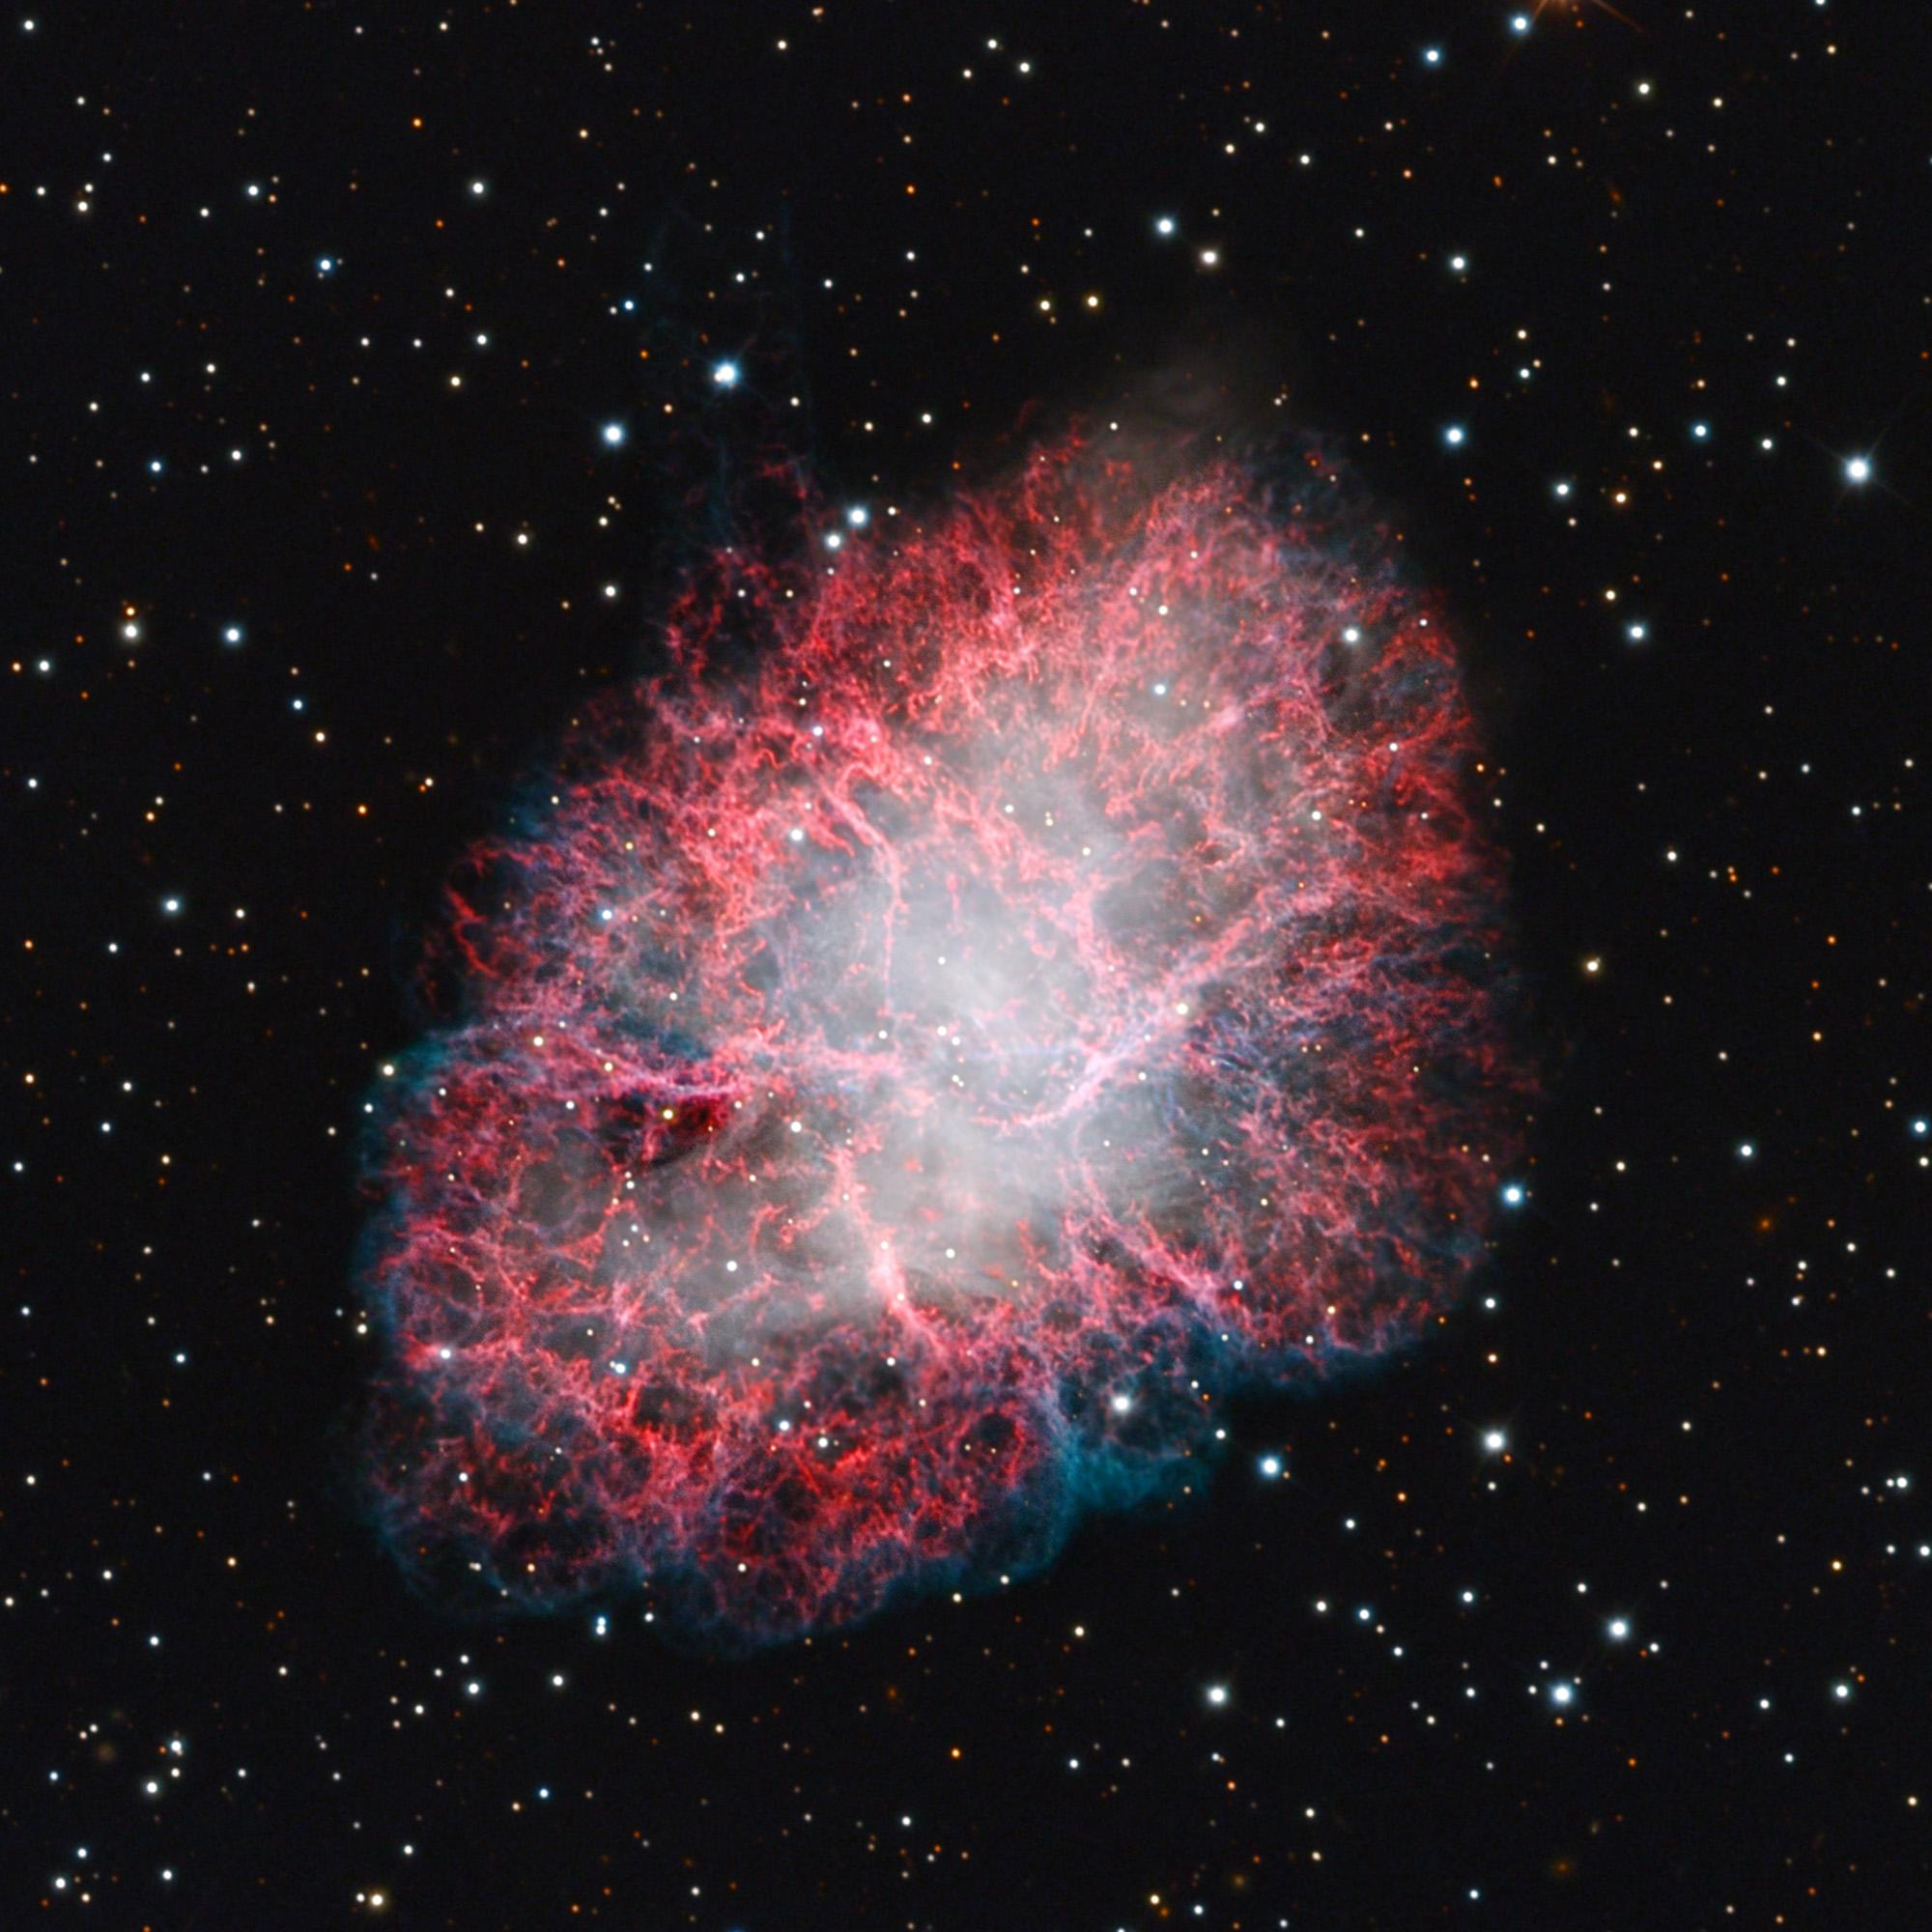 Located about 6,500 light-years from Earth in the constellation Taurus, the Crab Nebula is still expanding at a rate of more than 600 miles per second.